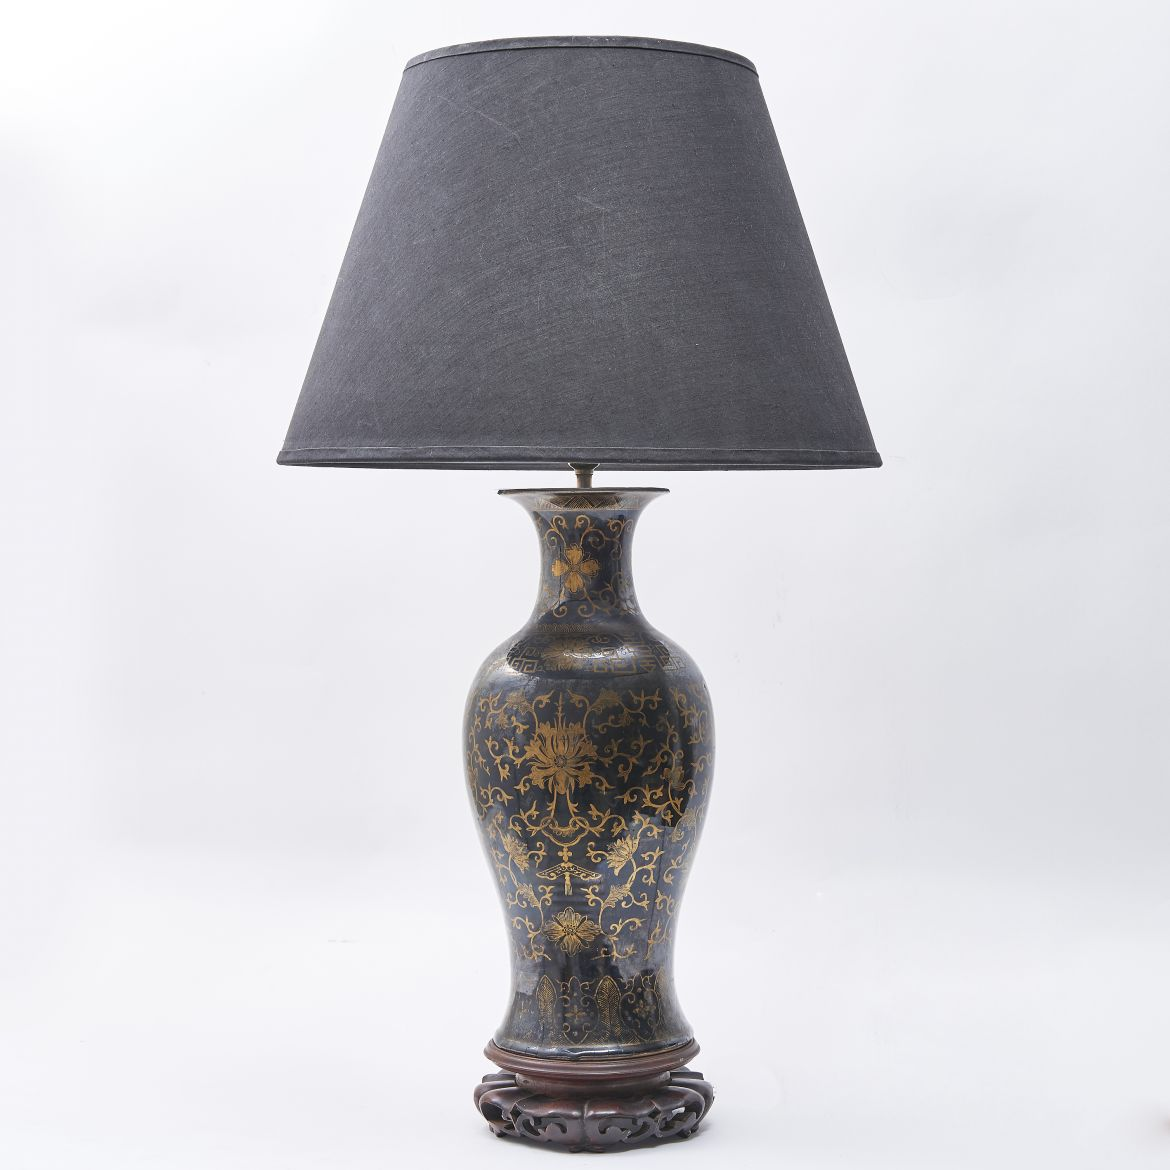 Chinese Gilt Decorated Lamp